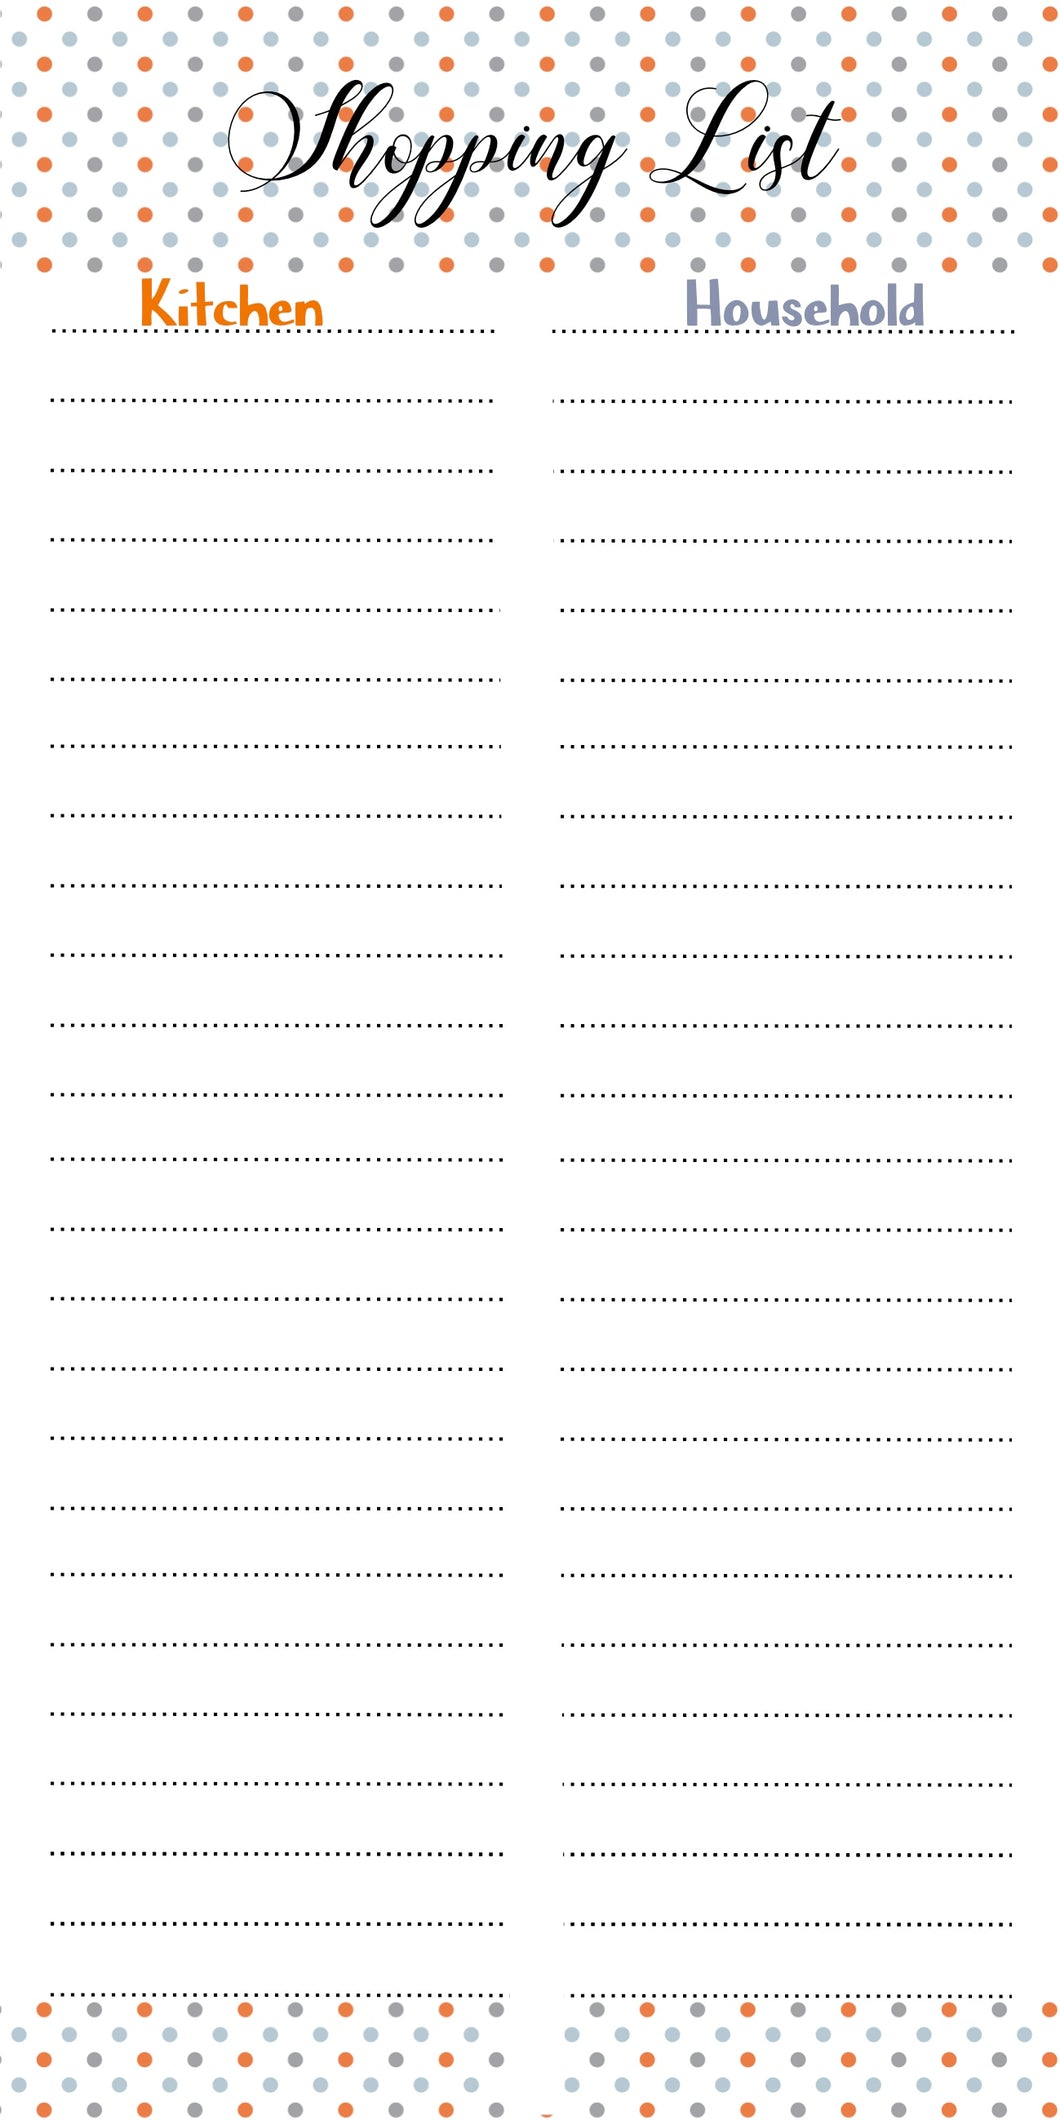 Shopping list pad with separate section for groceries and household items label shabel